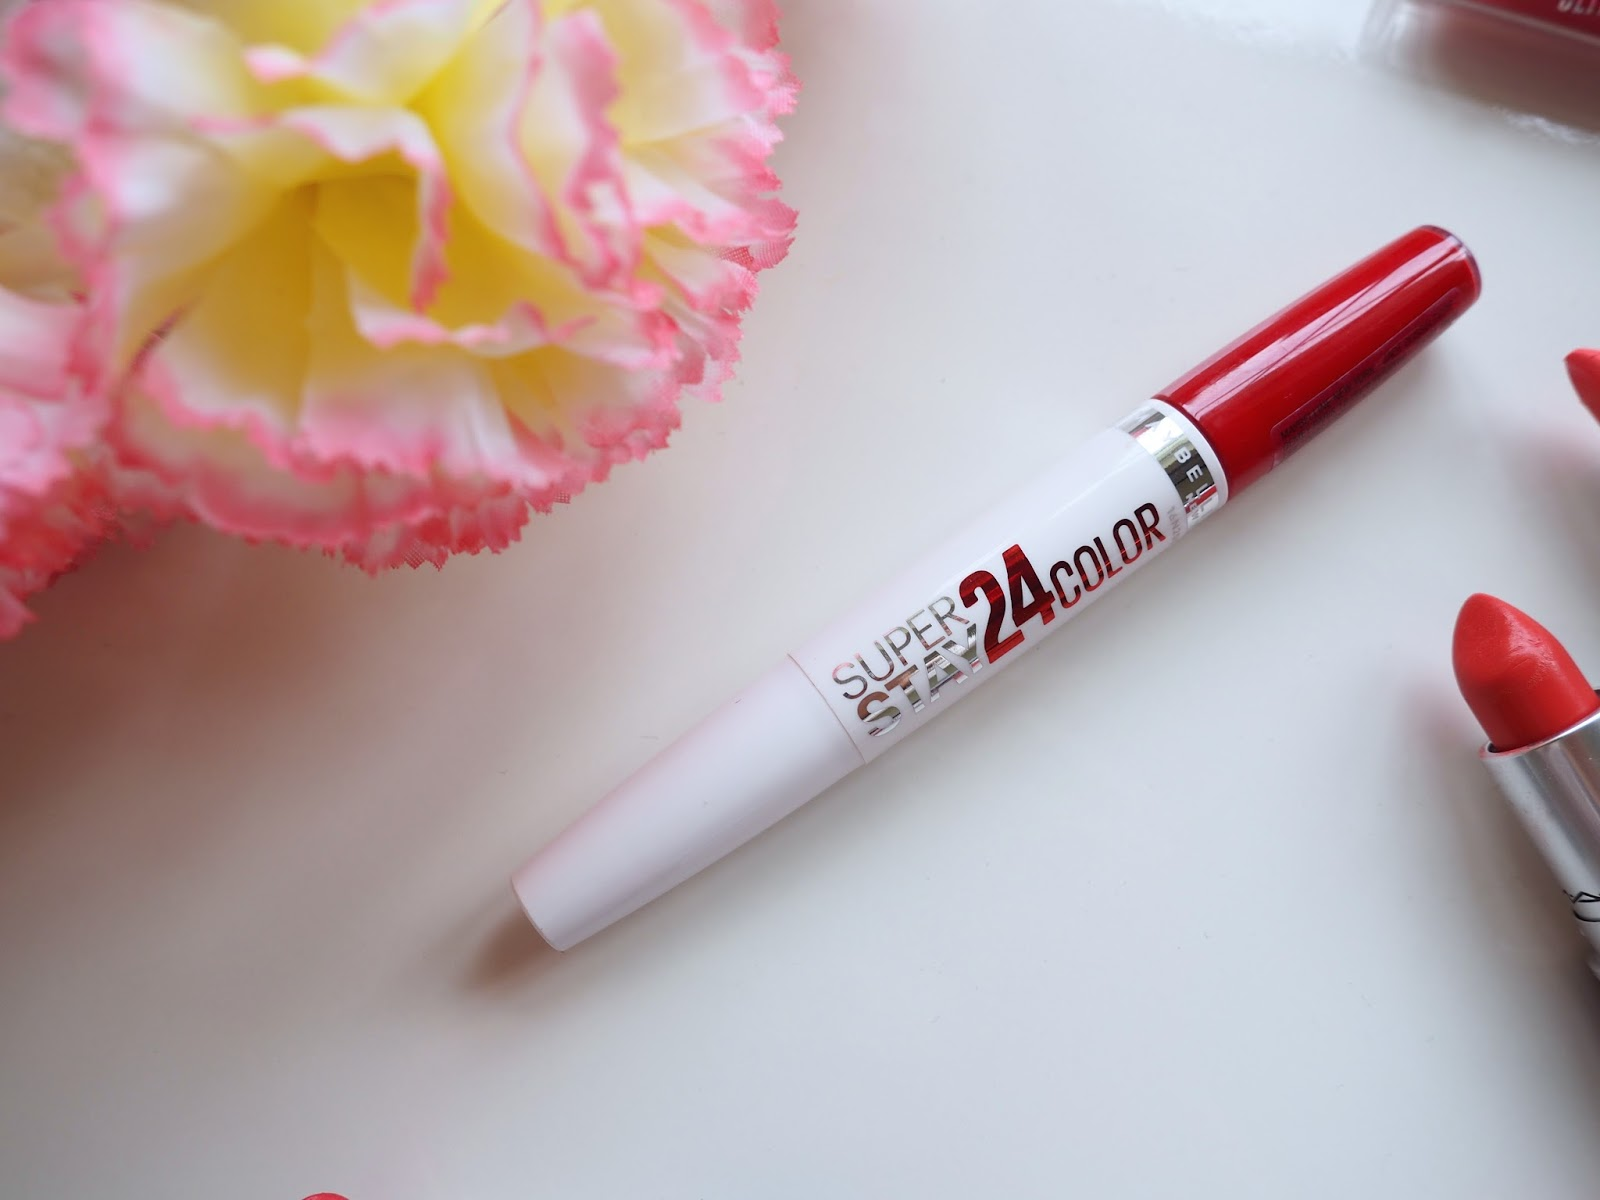 It's Cultured Spring/Summer Lip Colours Maybelline Super Stay 24 in Red Passion